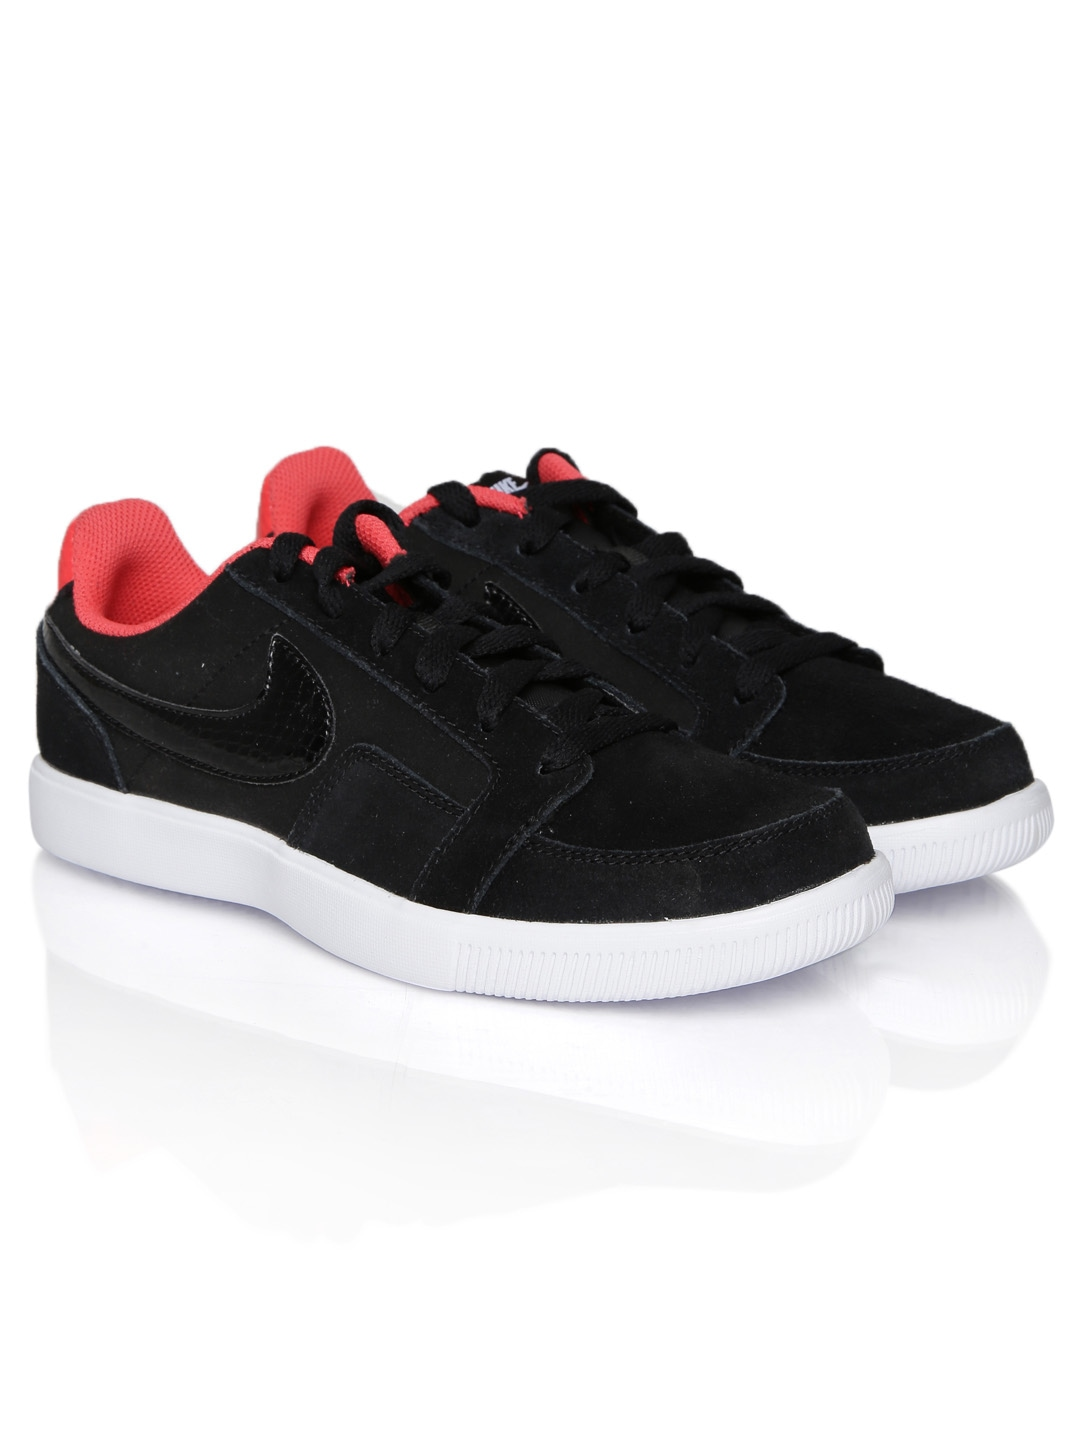 b0c9362bde9 nike black casual shoe Last week brought word of a potential release for  the famed Air Jordan 11